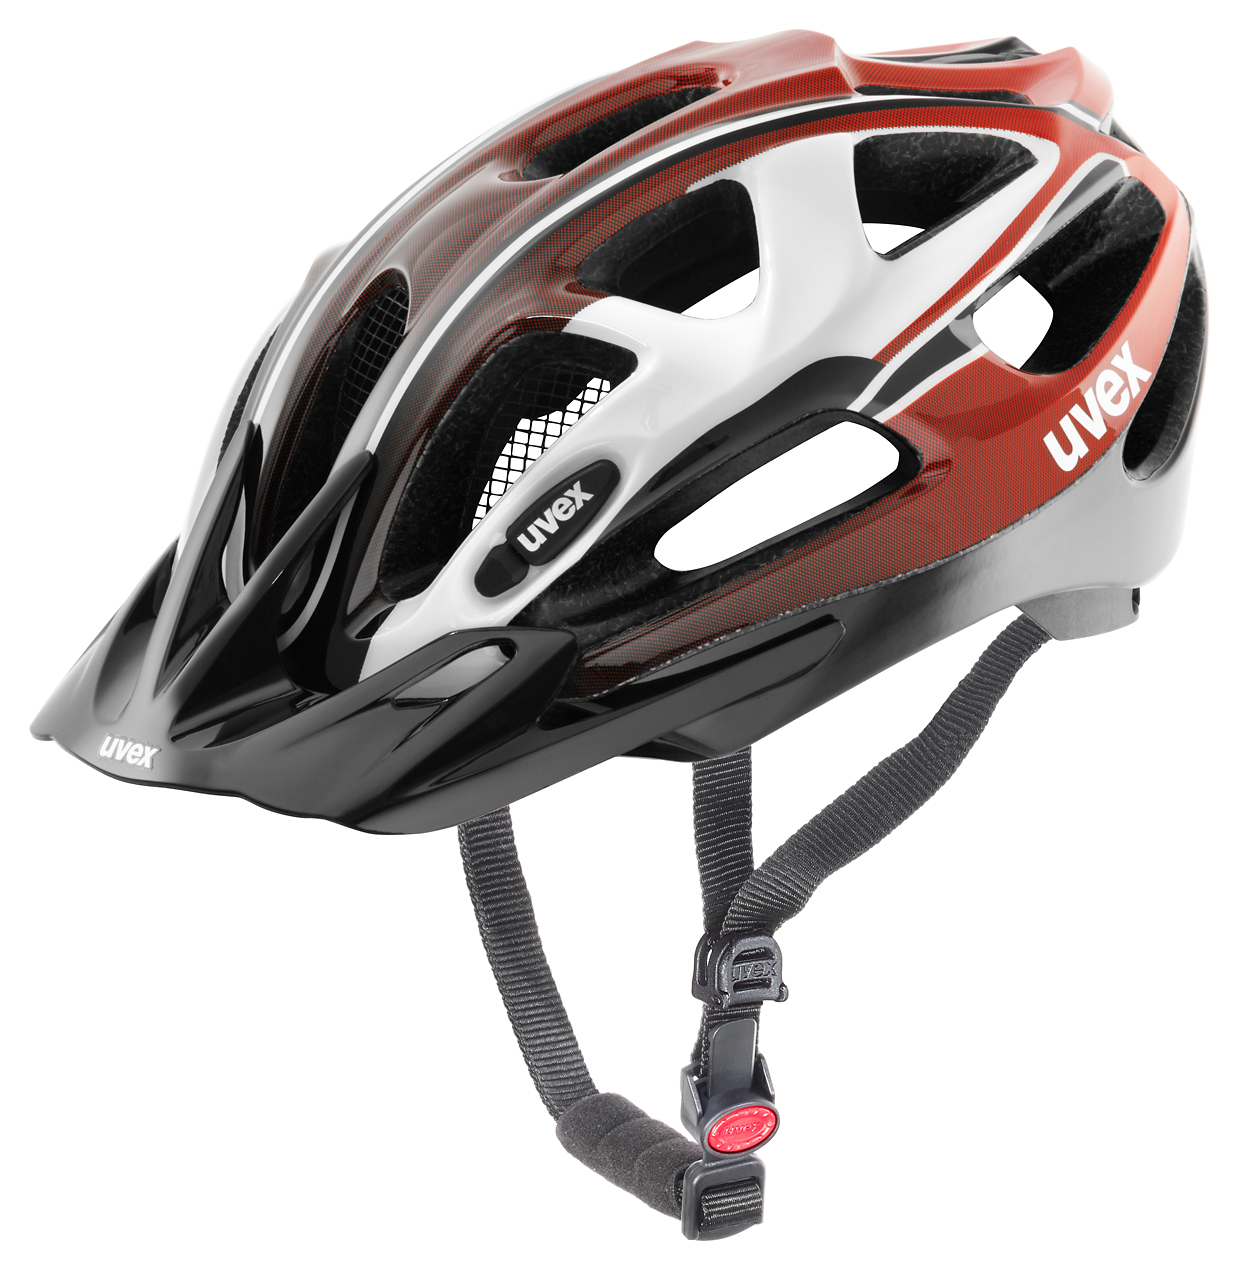 UVEX SUPERSONIC, WHITE-RED-BLACK 2016 52-57 cm